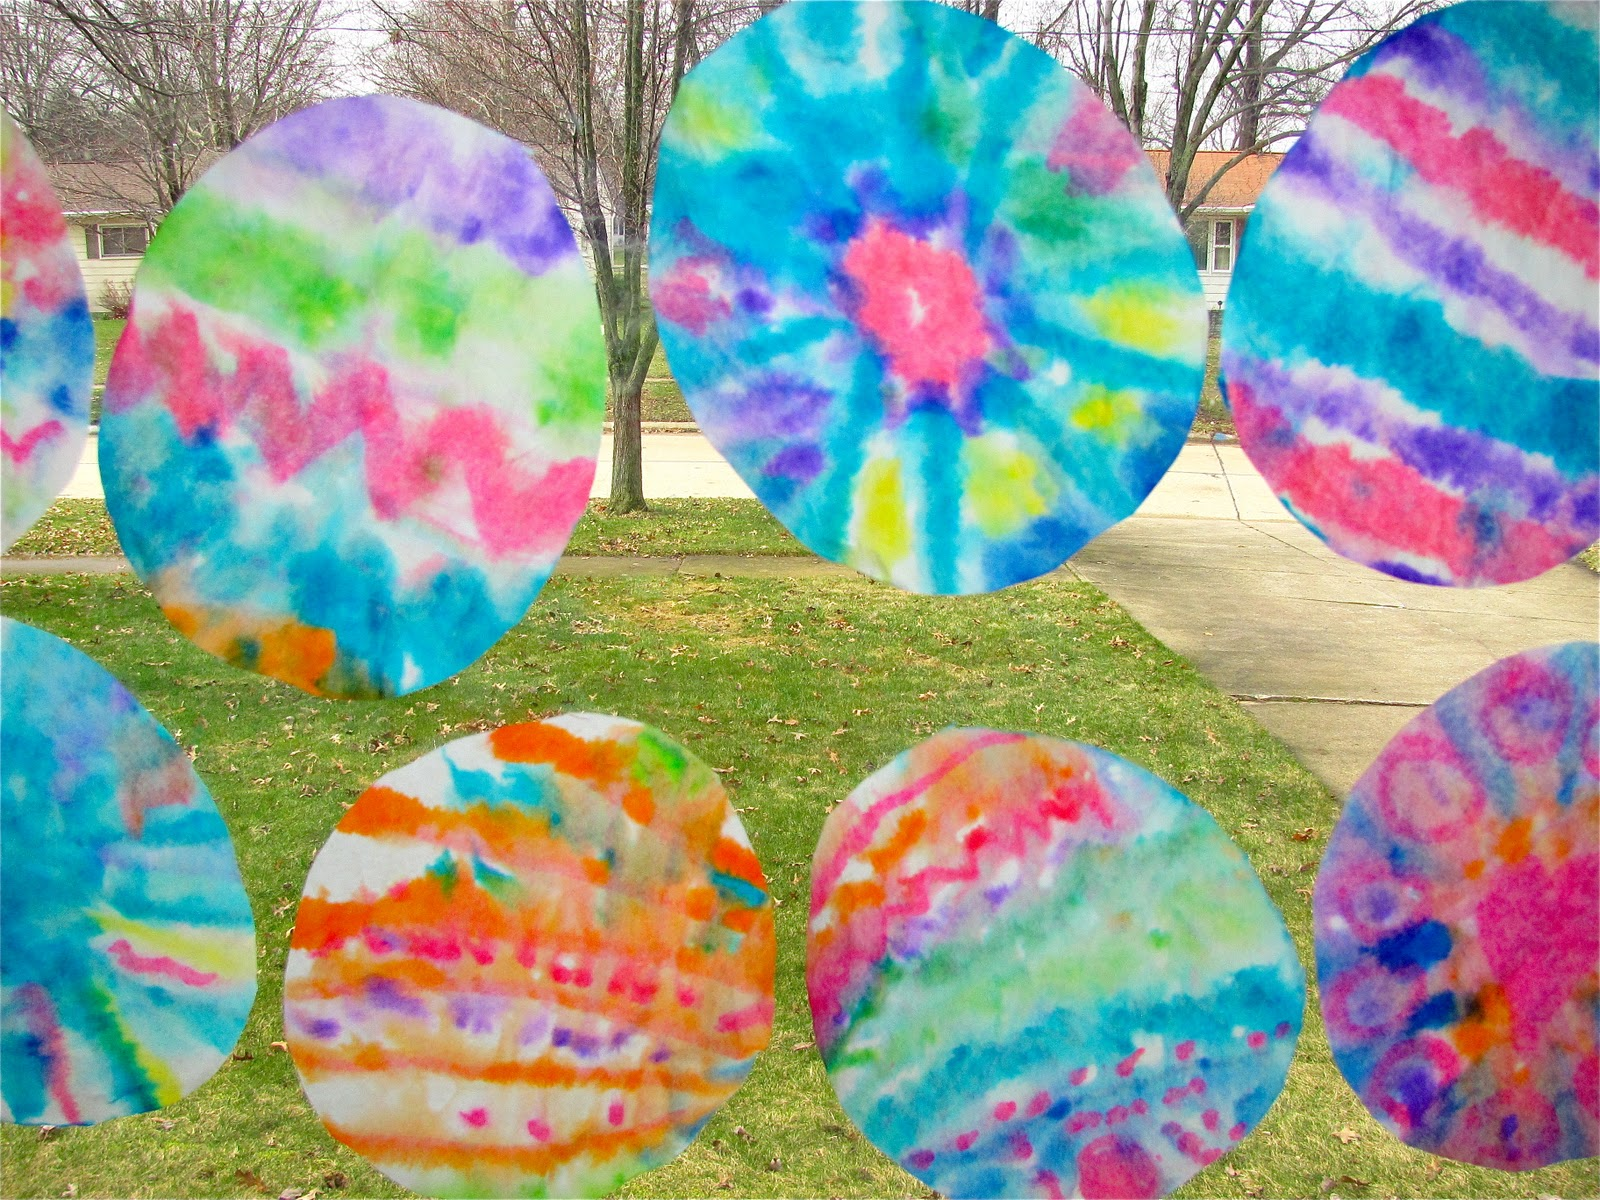 Easter arts and crafts for preschoolers - Easter Arts And Crafts For Preschoolers 23